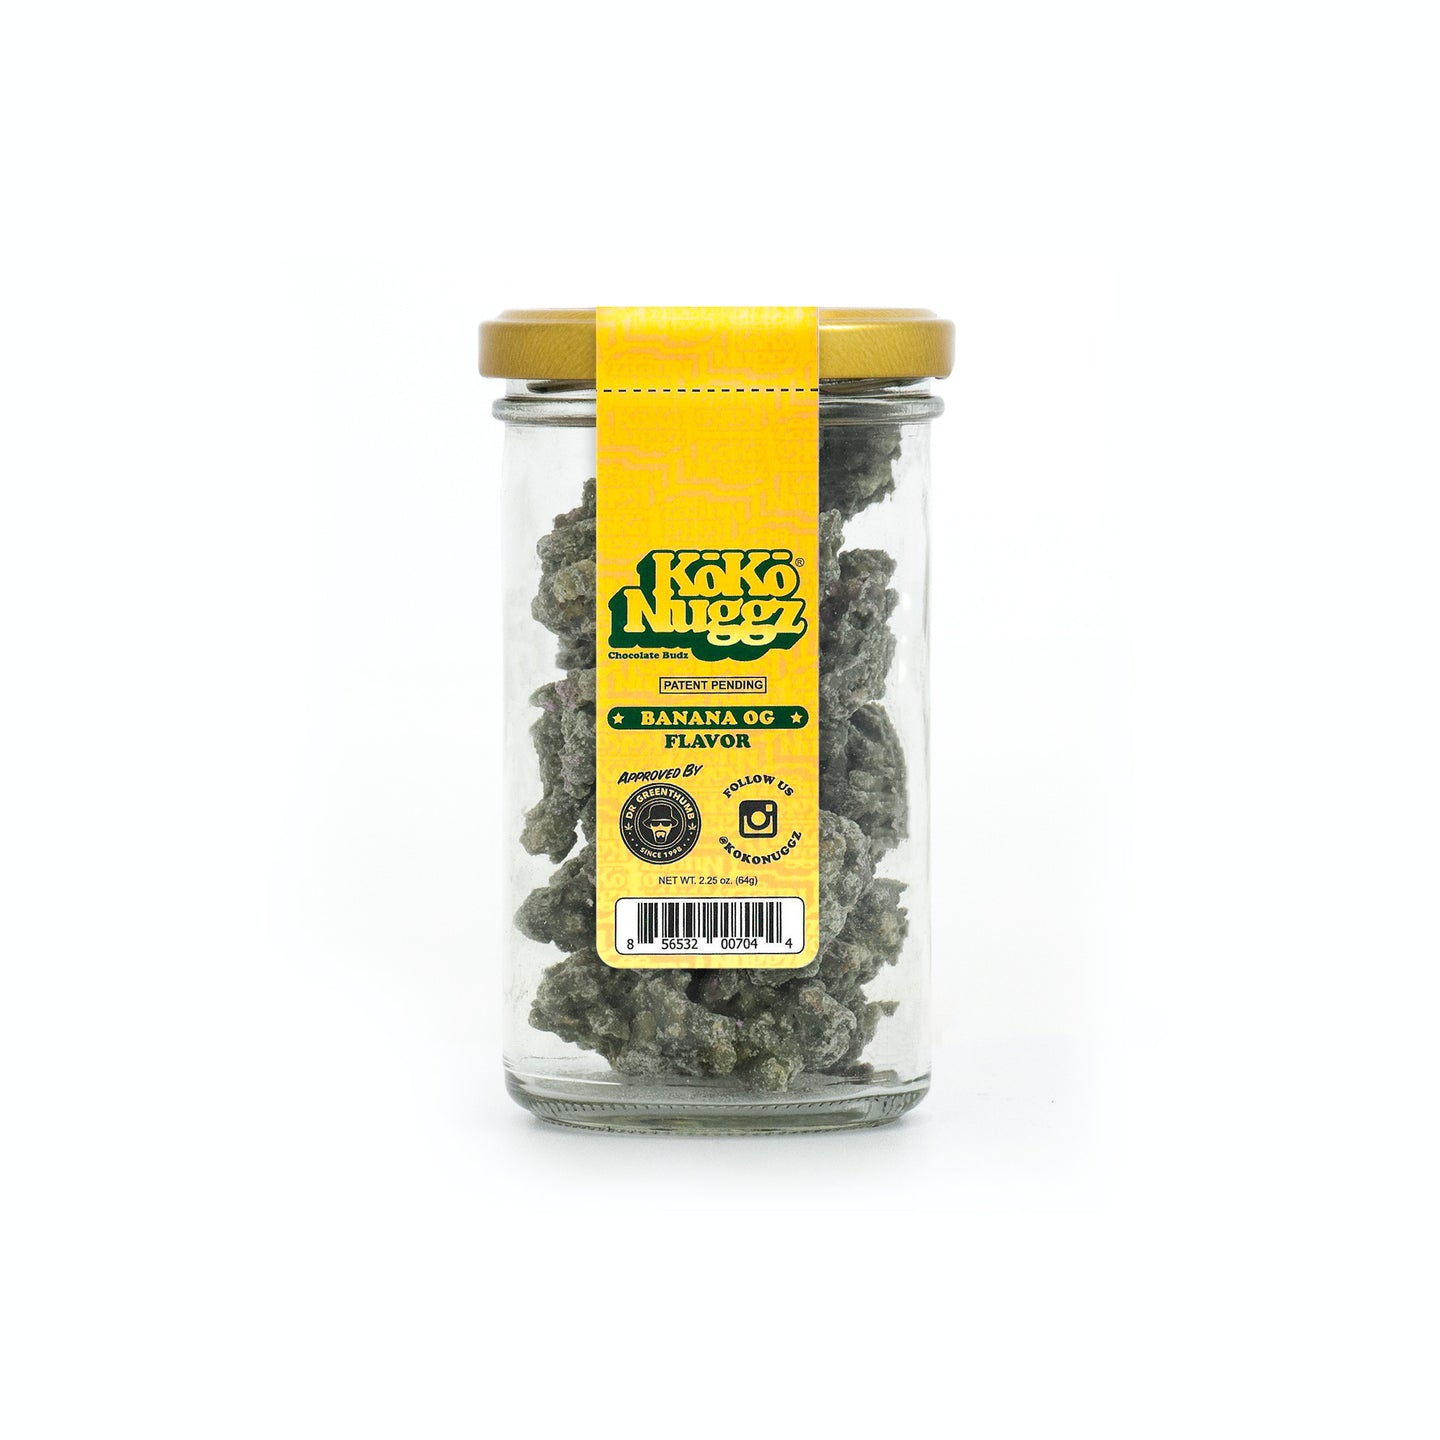 Banana OG Flavour 2.25oz - Koko Nuggz Europe